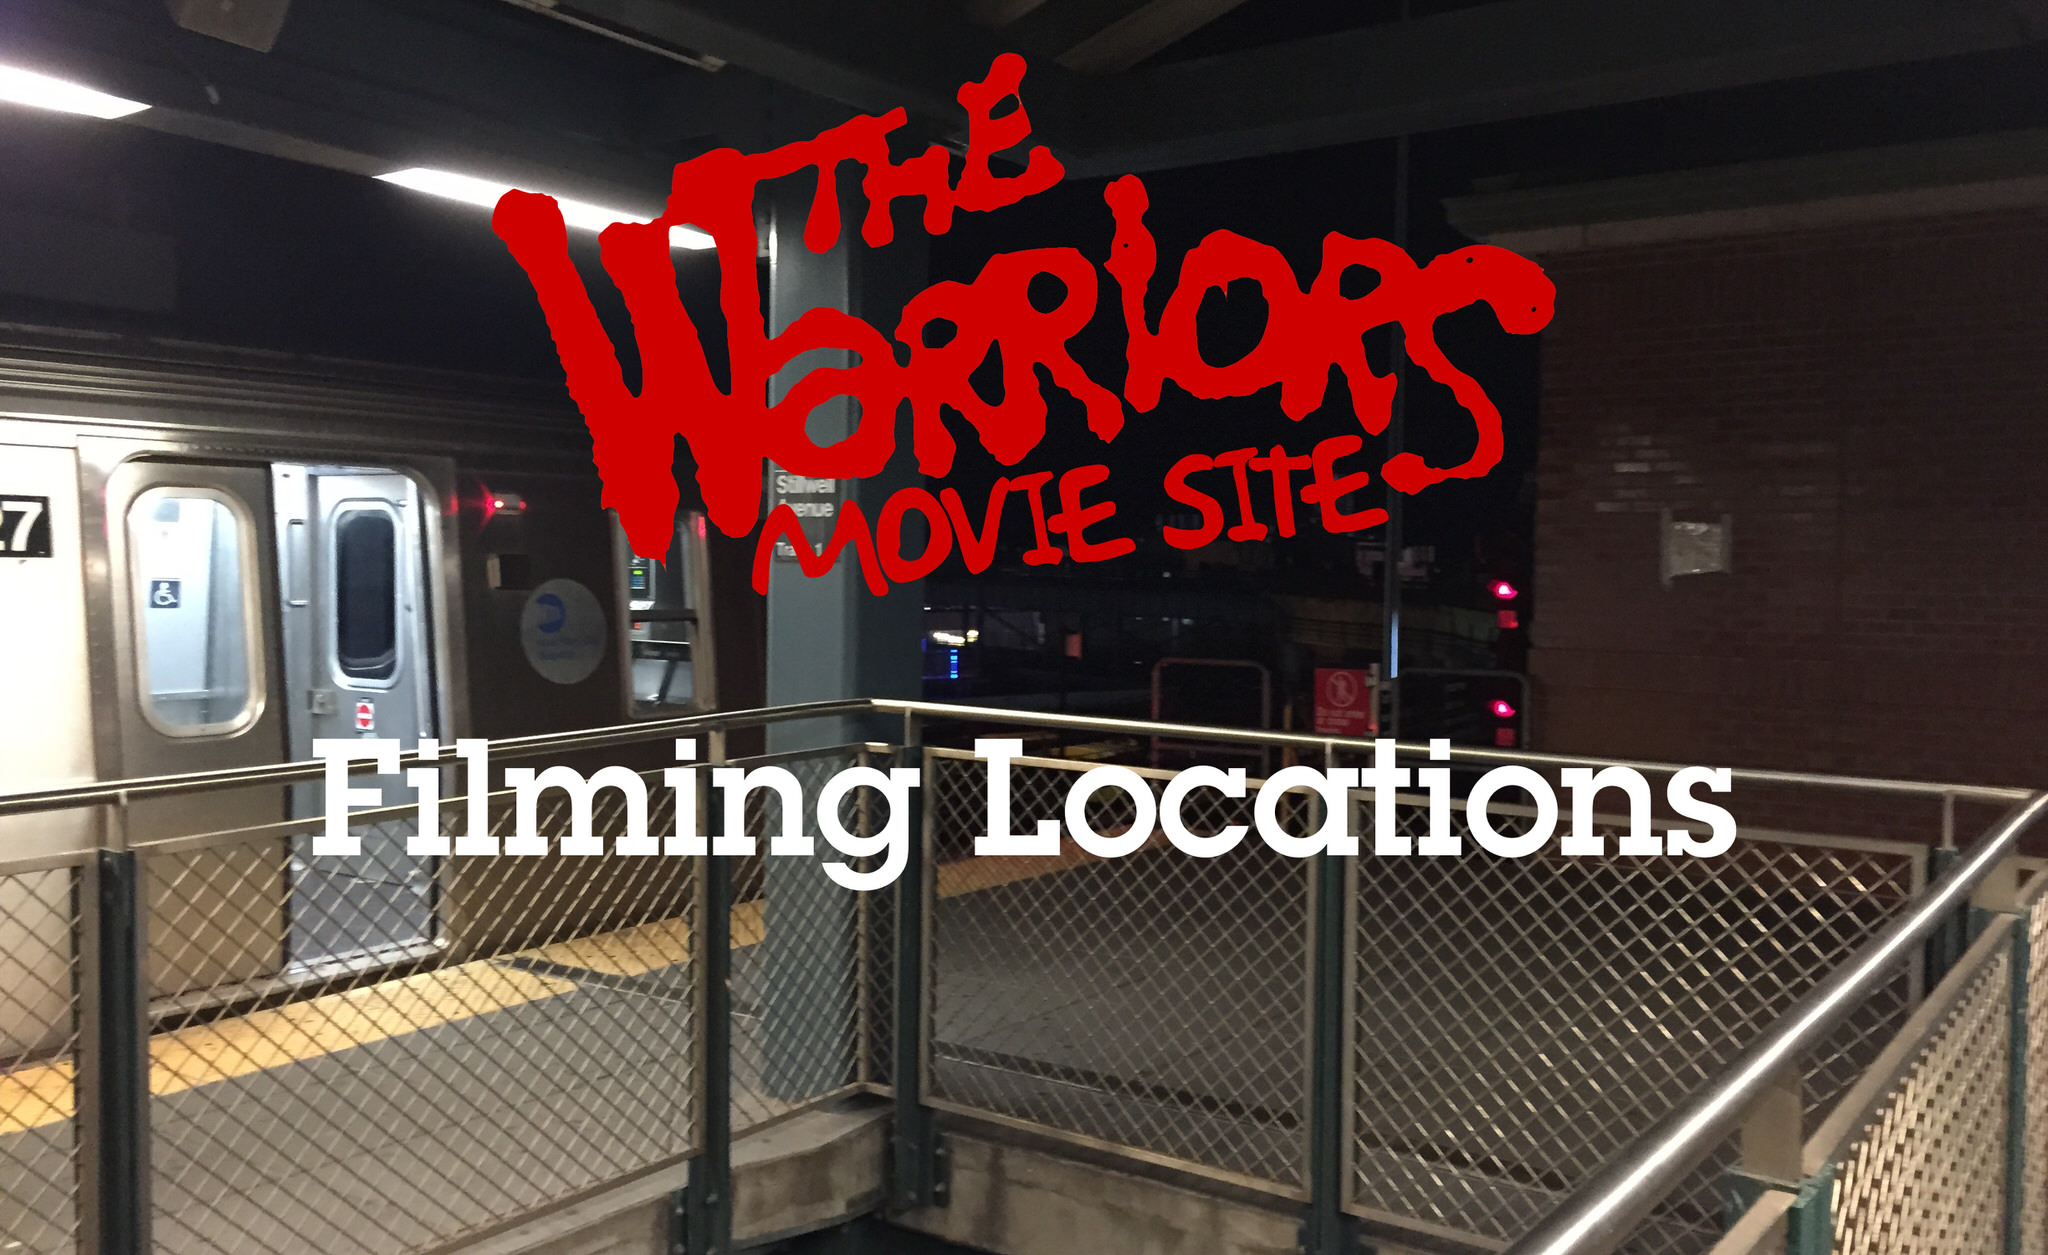 The Warriors Movie Site - Filming Locations